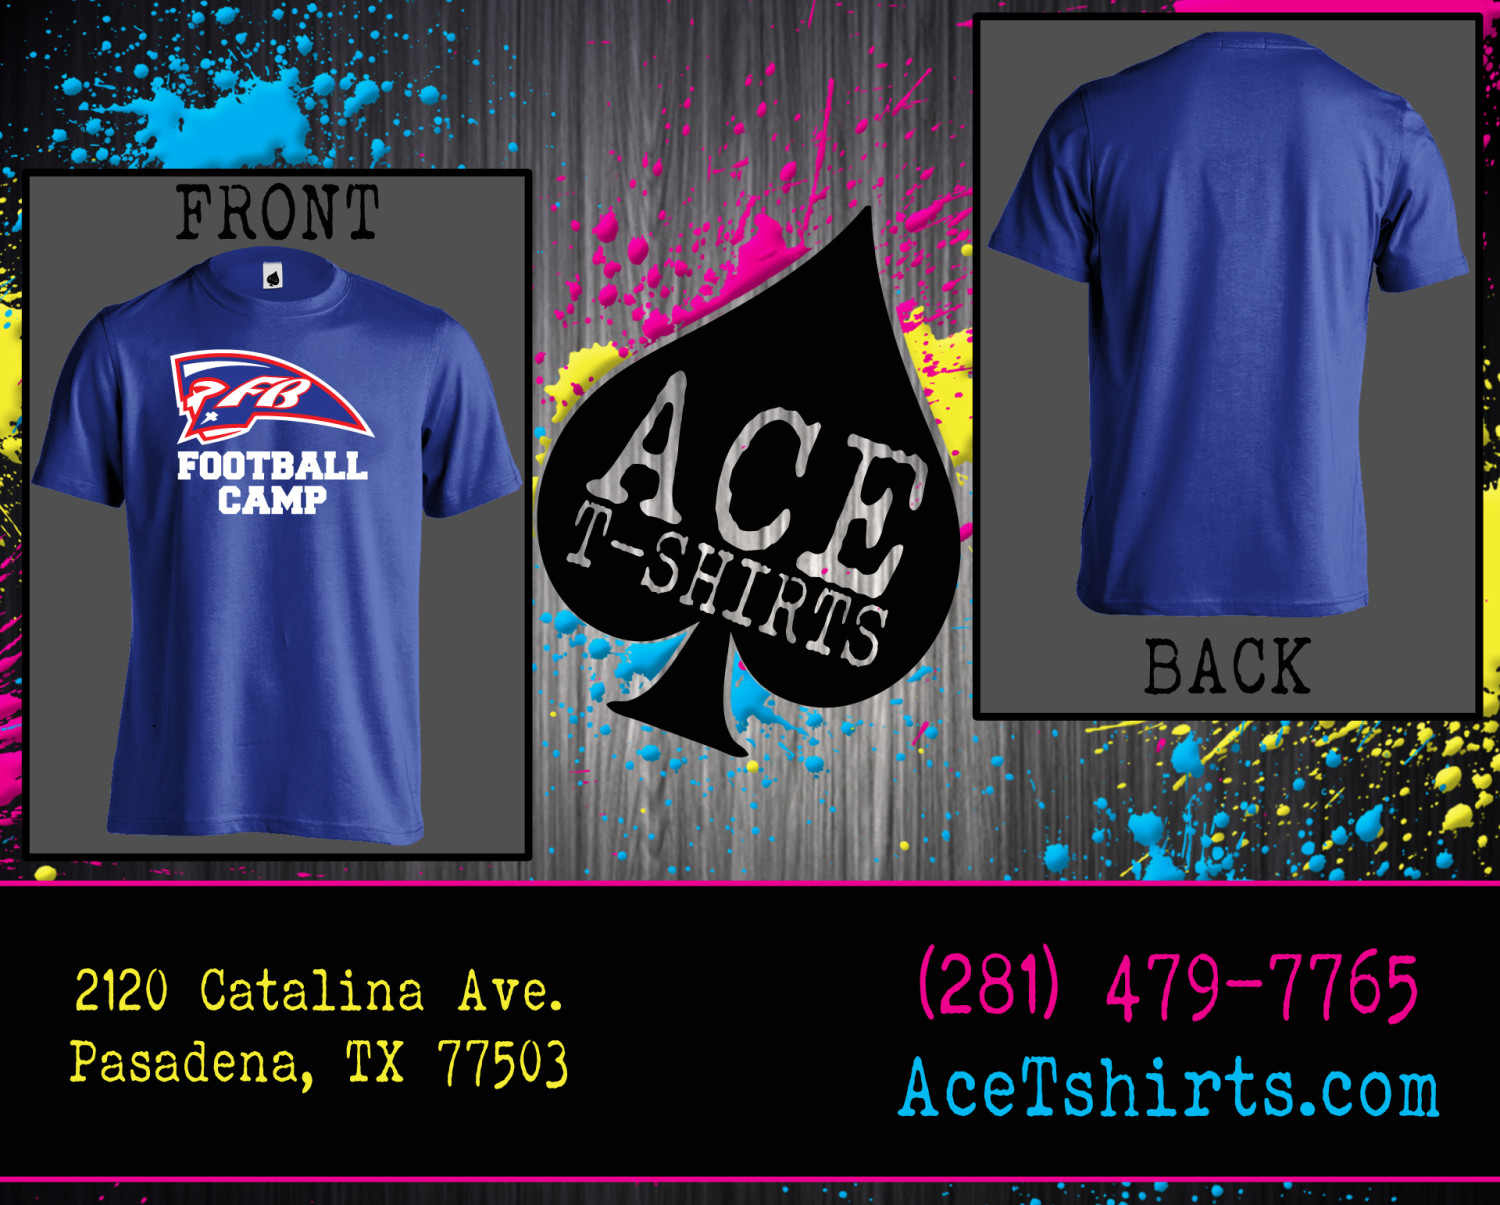 fbca shirts for the summer football camp 2015 � ace tshirts